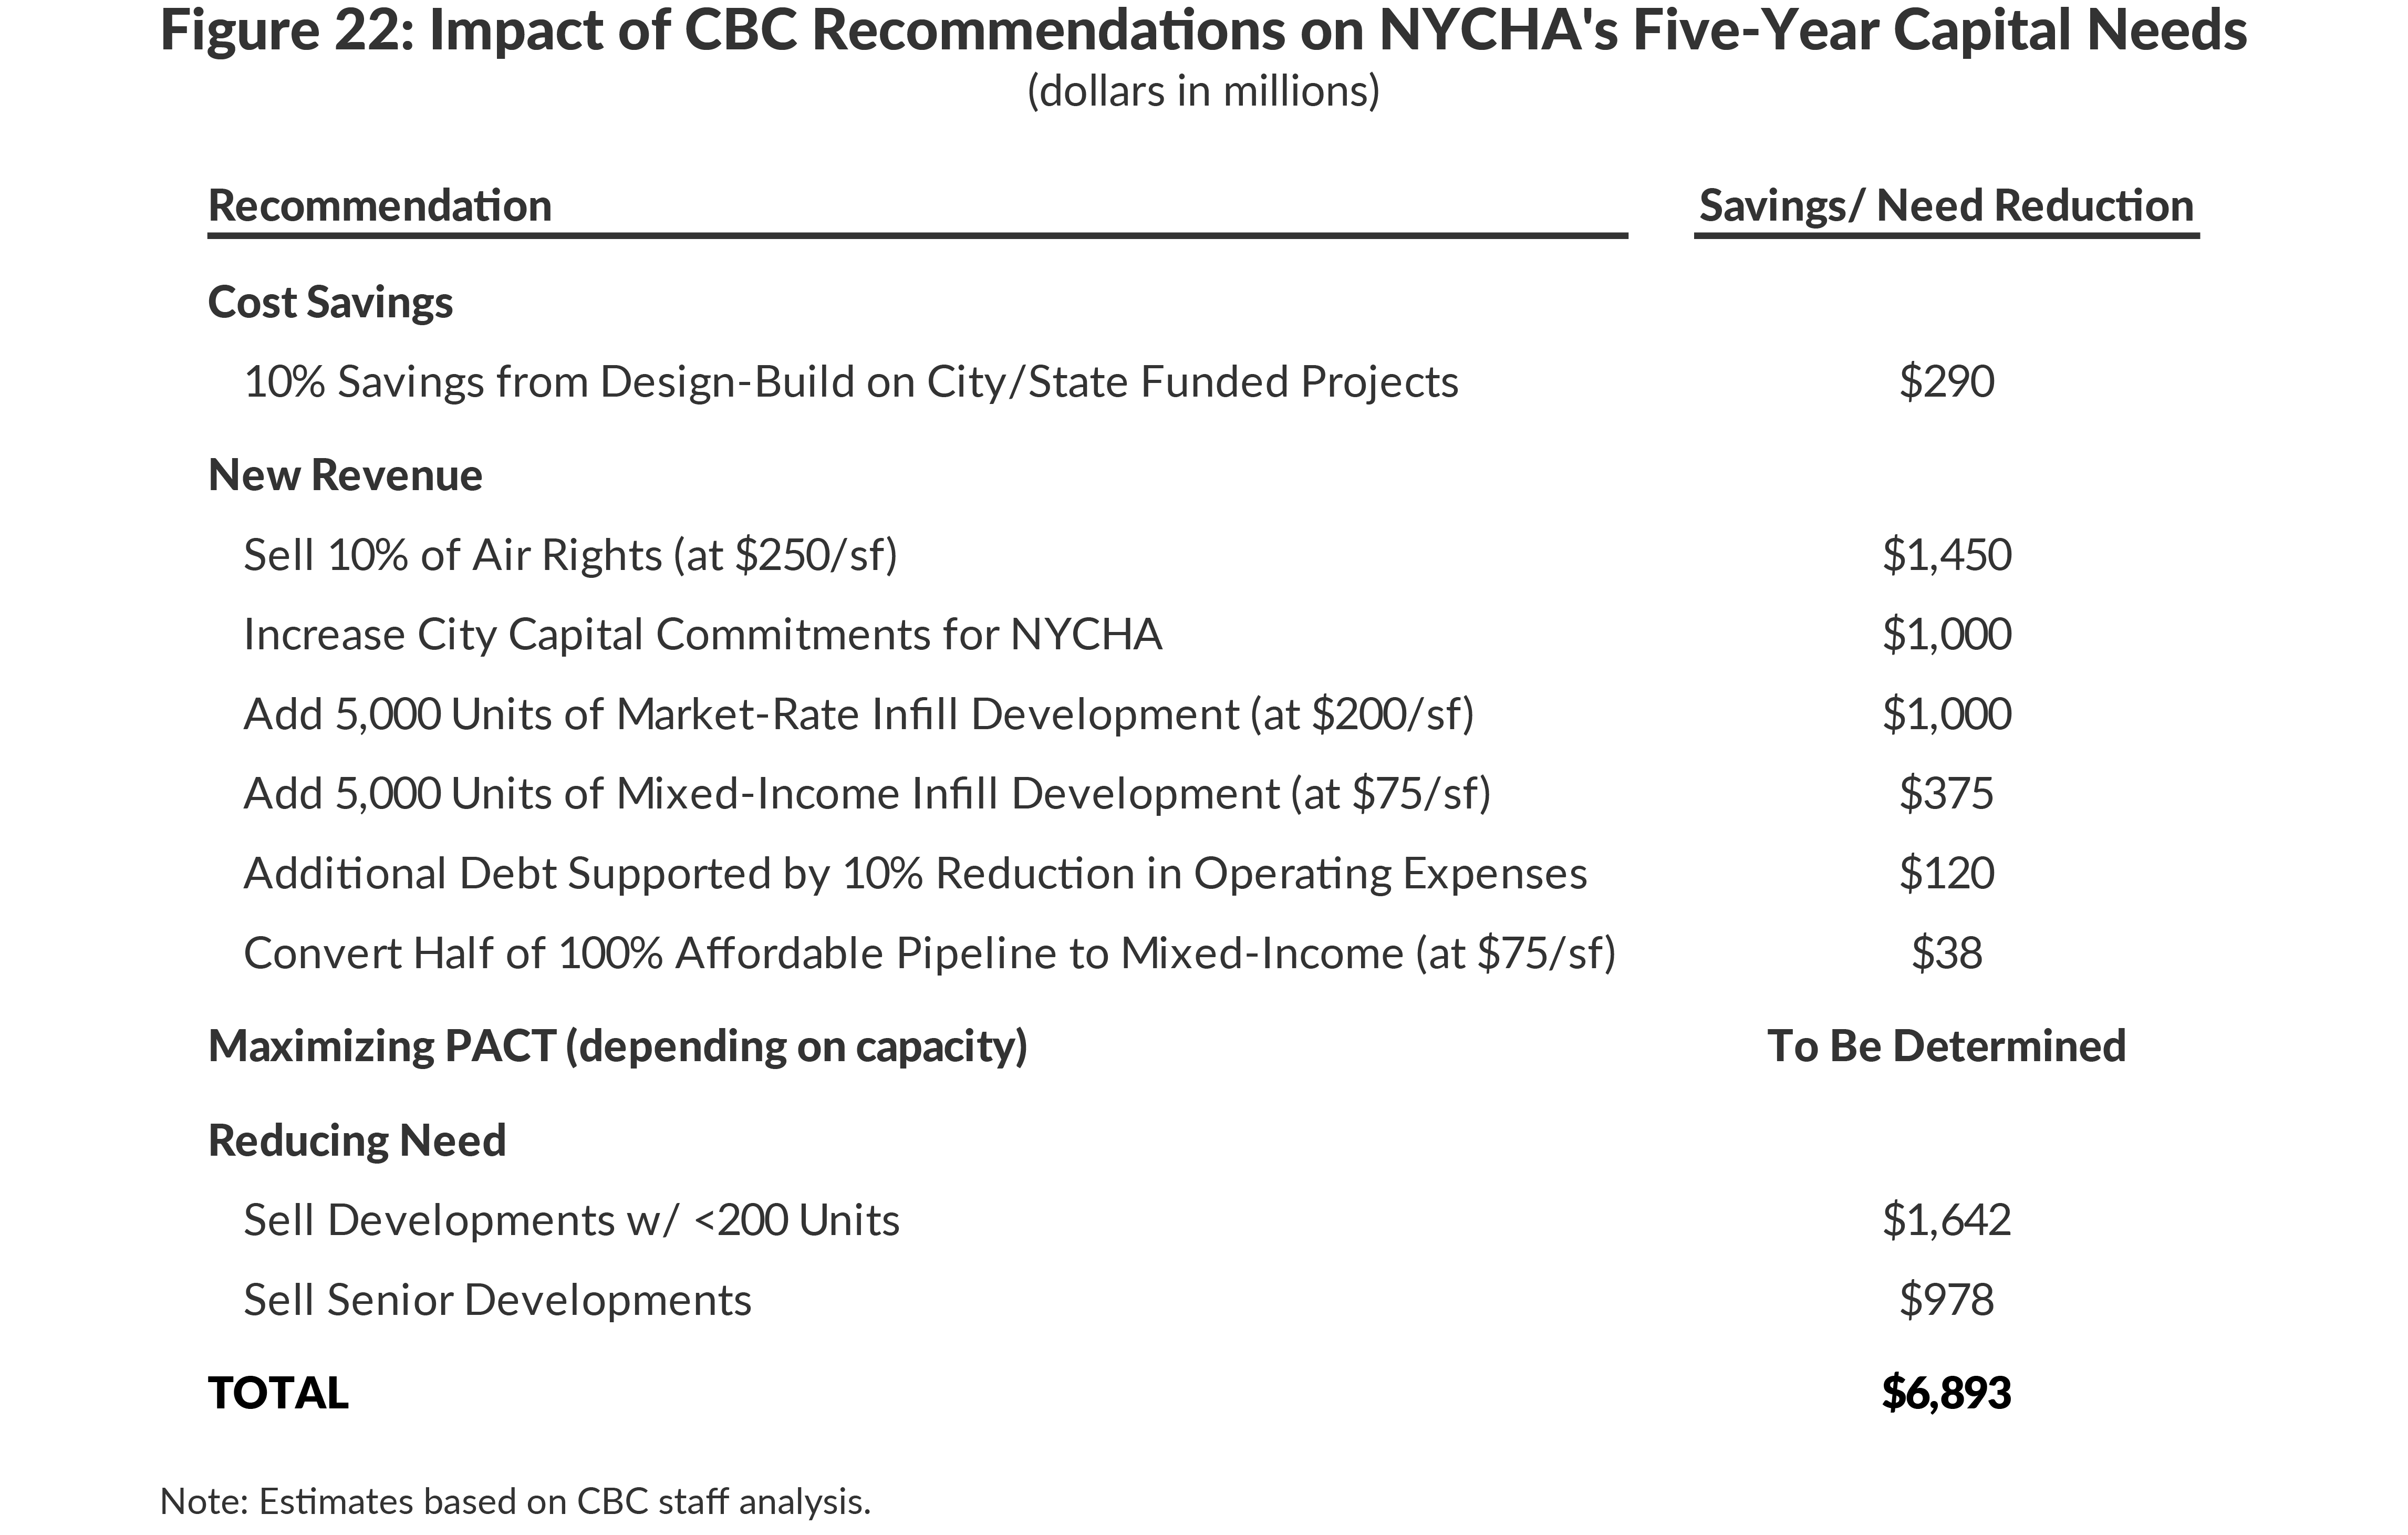 Figure 22: Impact of CBC Recommendations on NYCHA's Five-Year Capital Needs